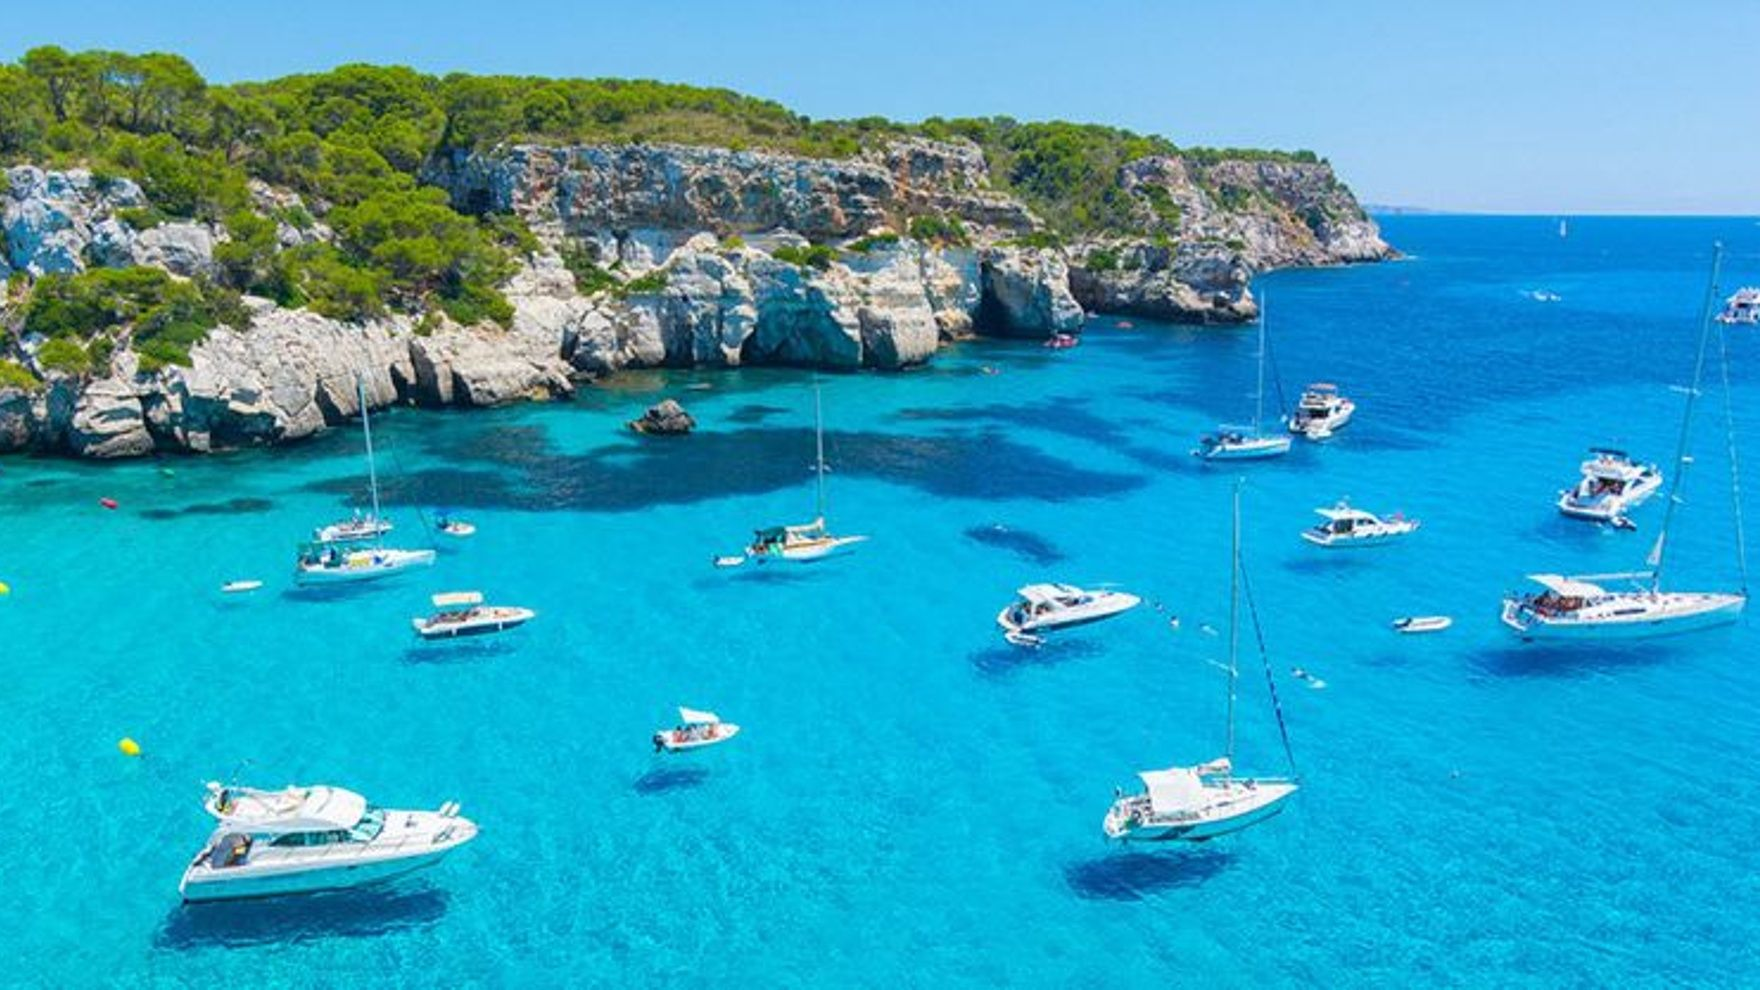 The Balearic Islands сruise